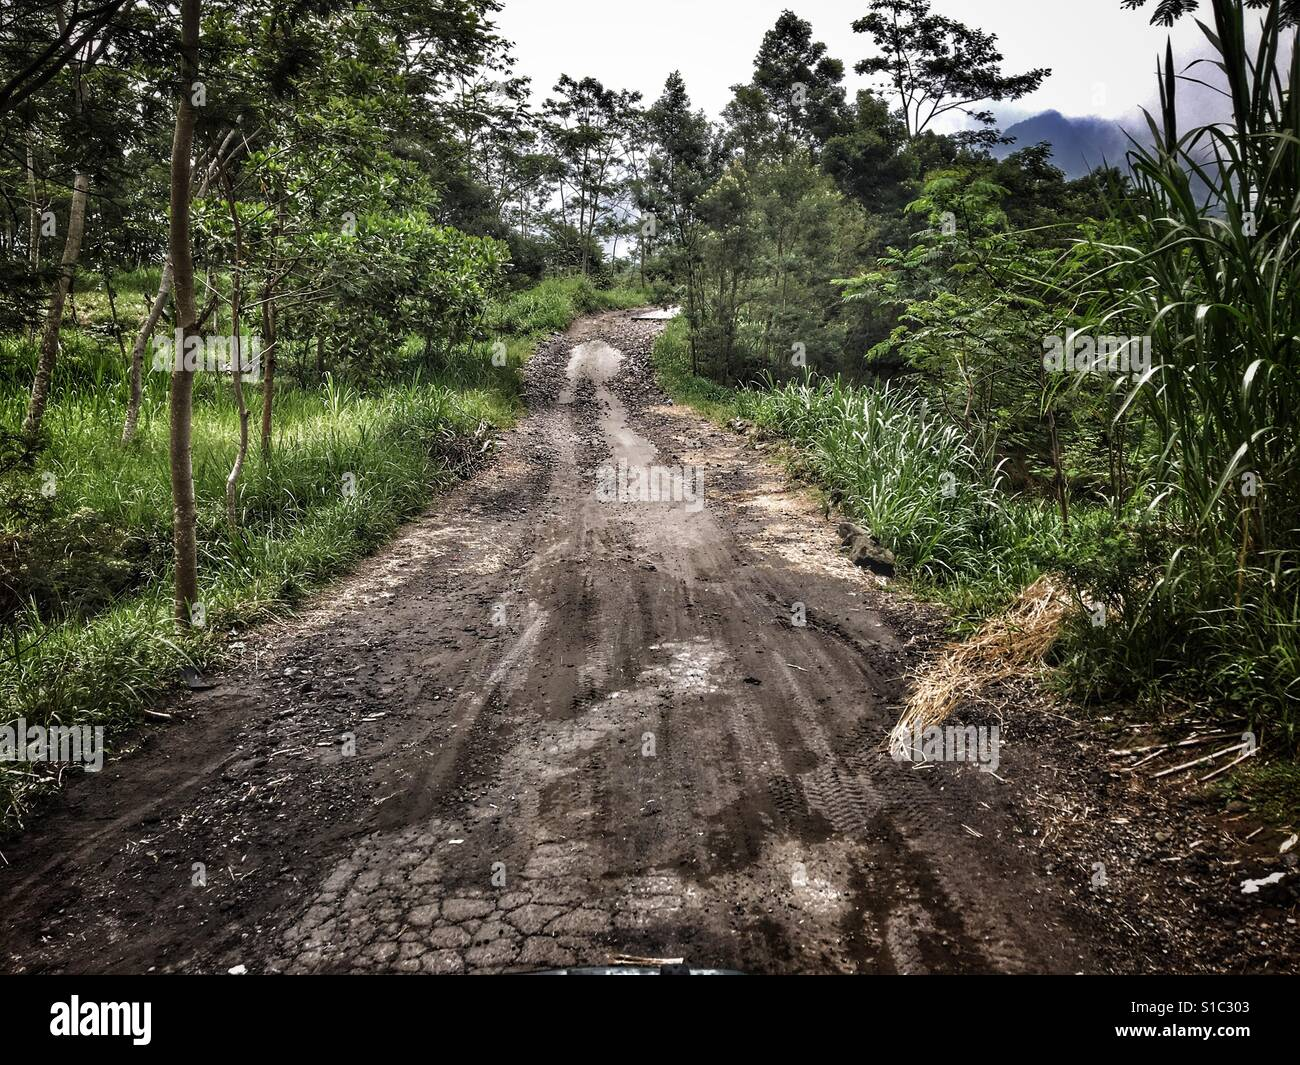 Rural road in Mount Merapi area damaged during the 2010 eruption - Java, Indonesia - Stock Image